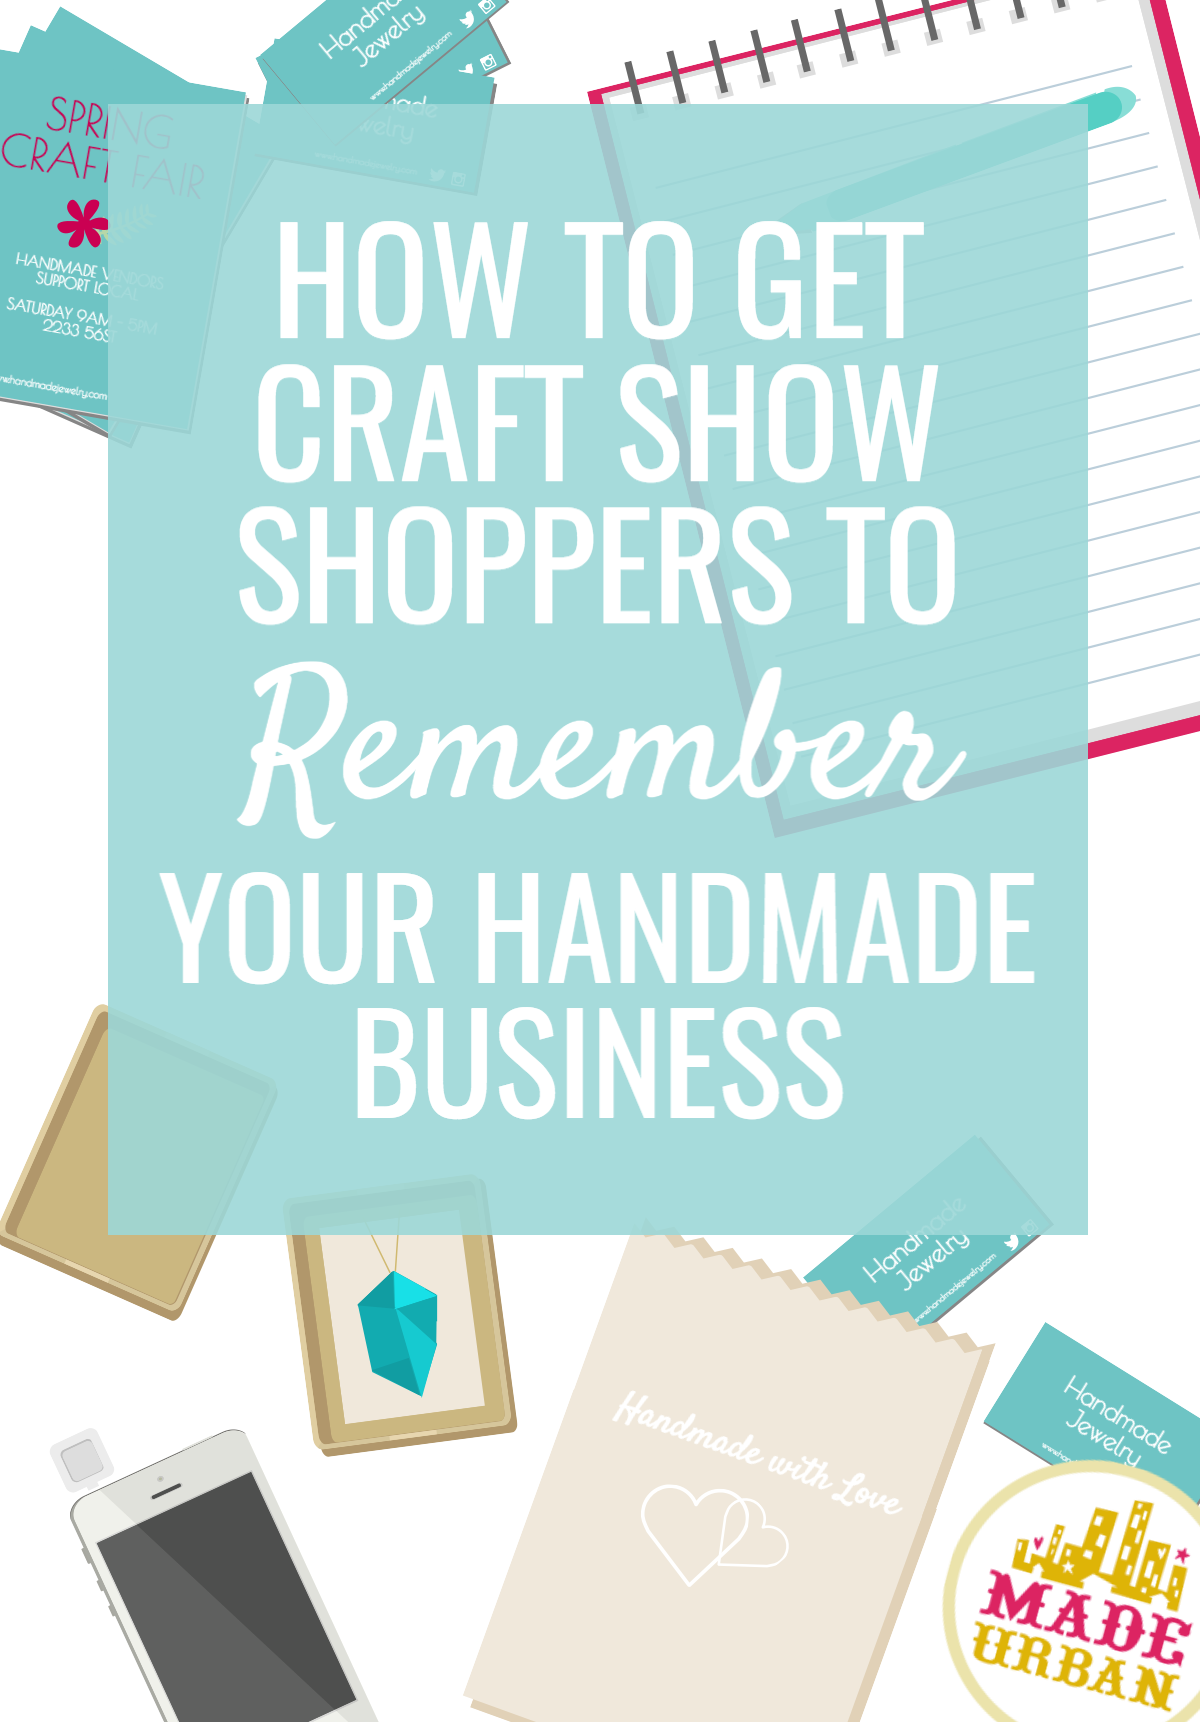 If you want sales coming if after a craft show and repeat customers, you must find a way to get shoppers to remember your handmade business. Here's how.